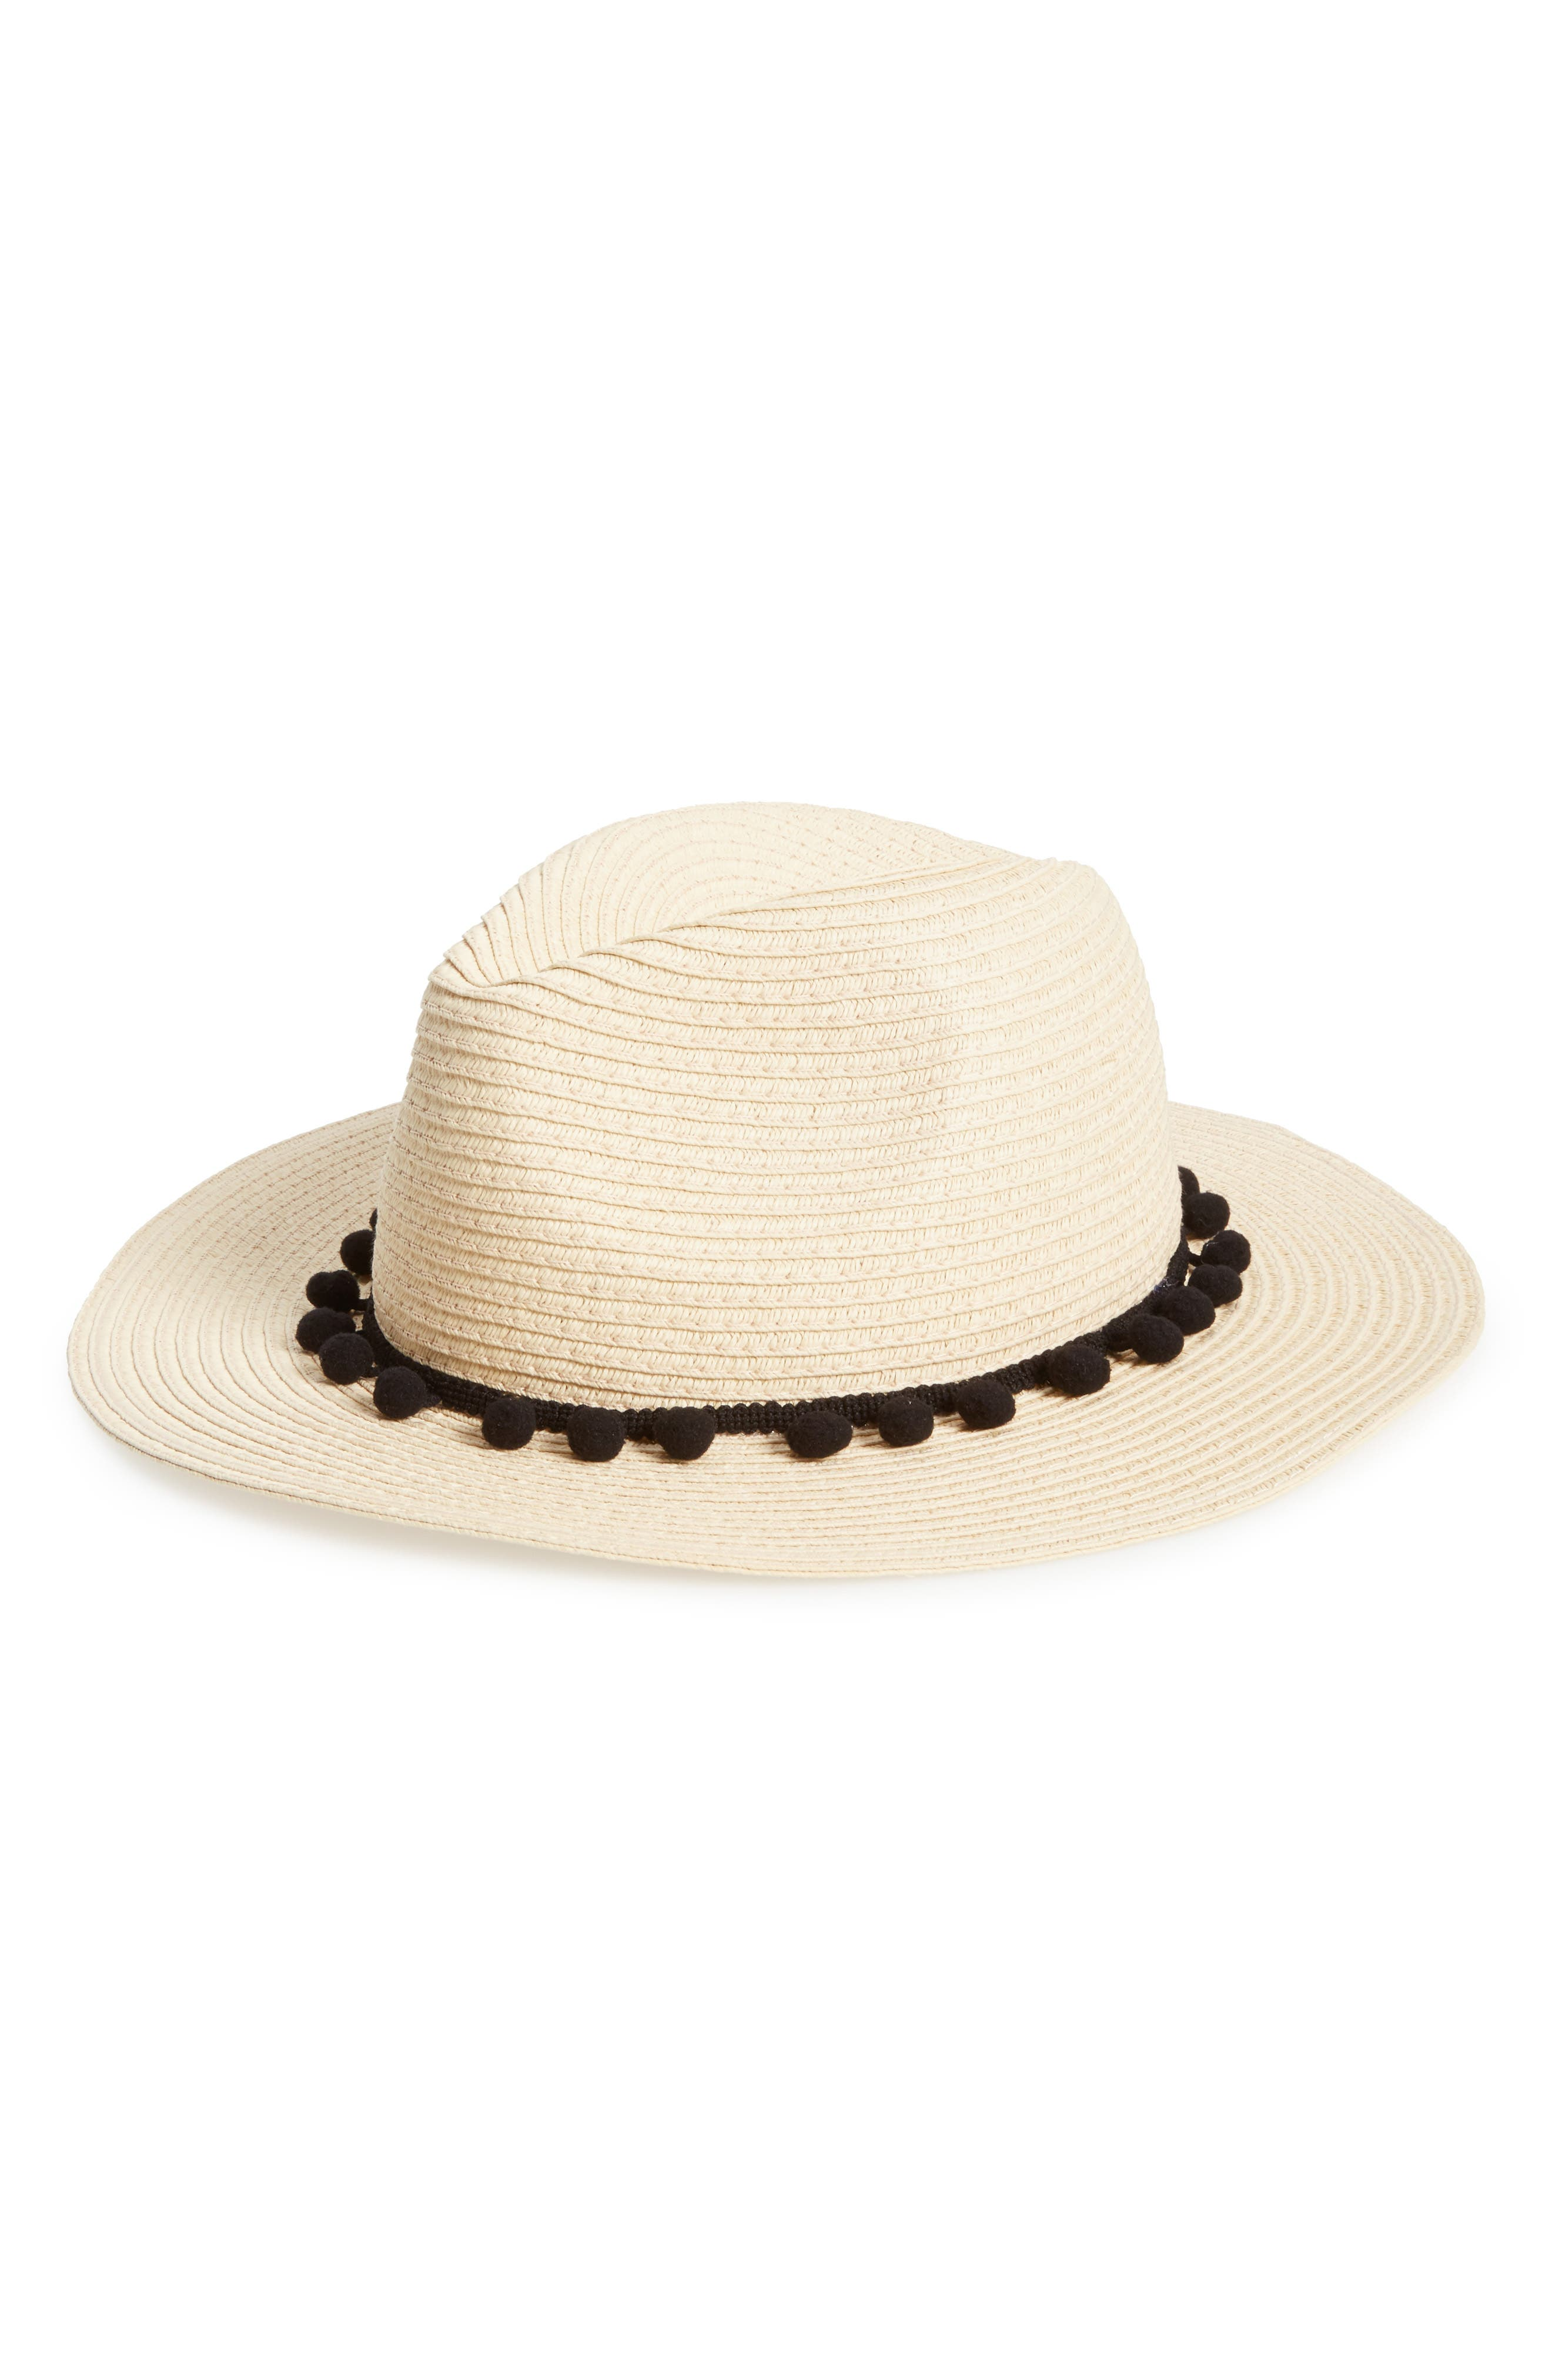 Alternate Image 1 Selected - Sole Society Pom Pom Panama Hat